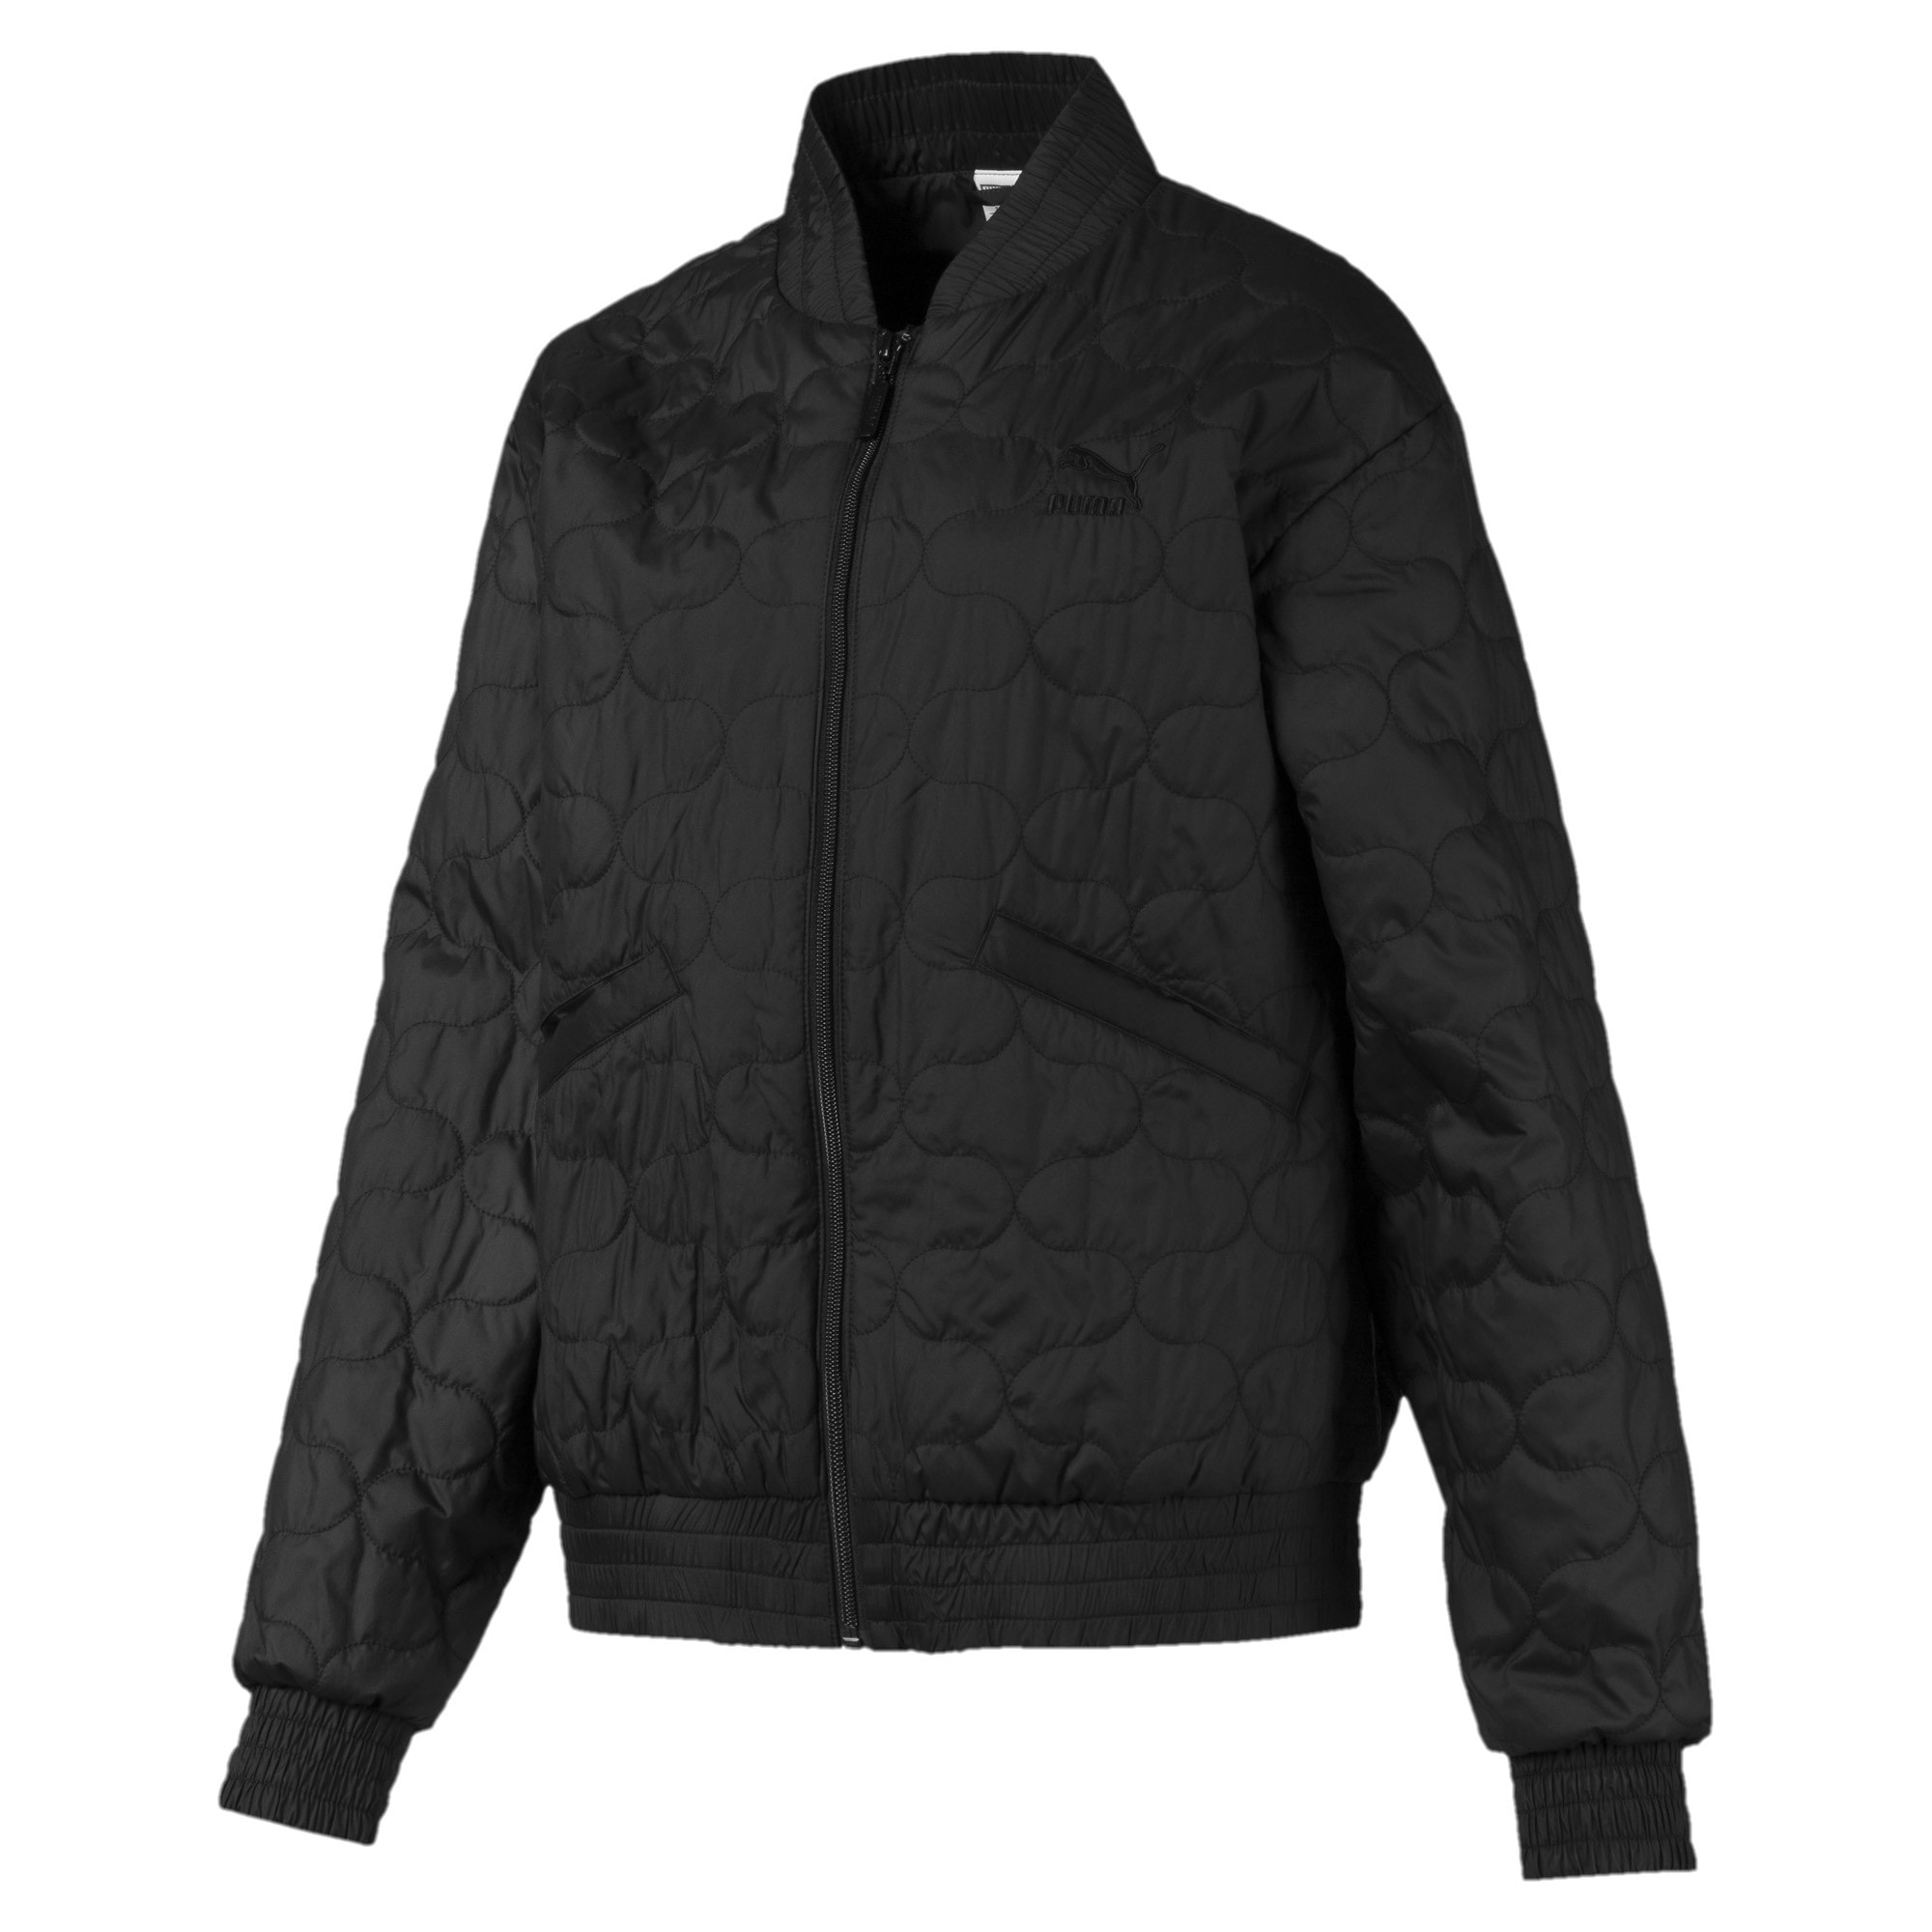 Thumbnail 1 of Woven Women's Bomber Jacket, Puma Black, medium